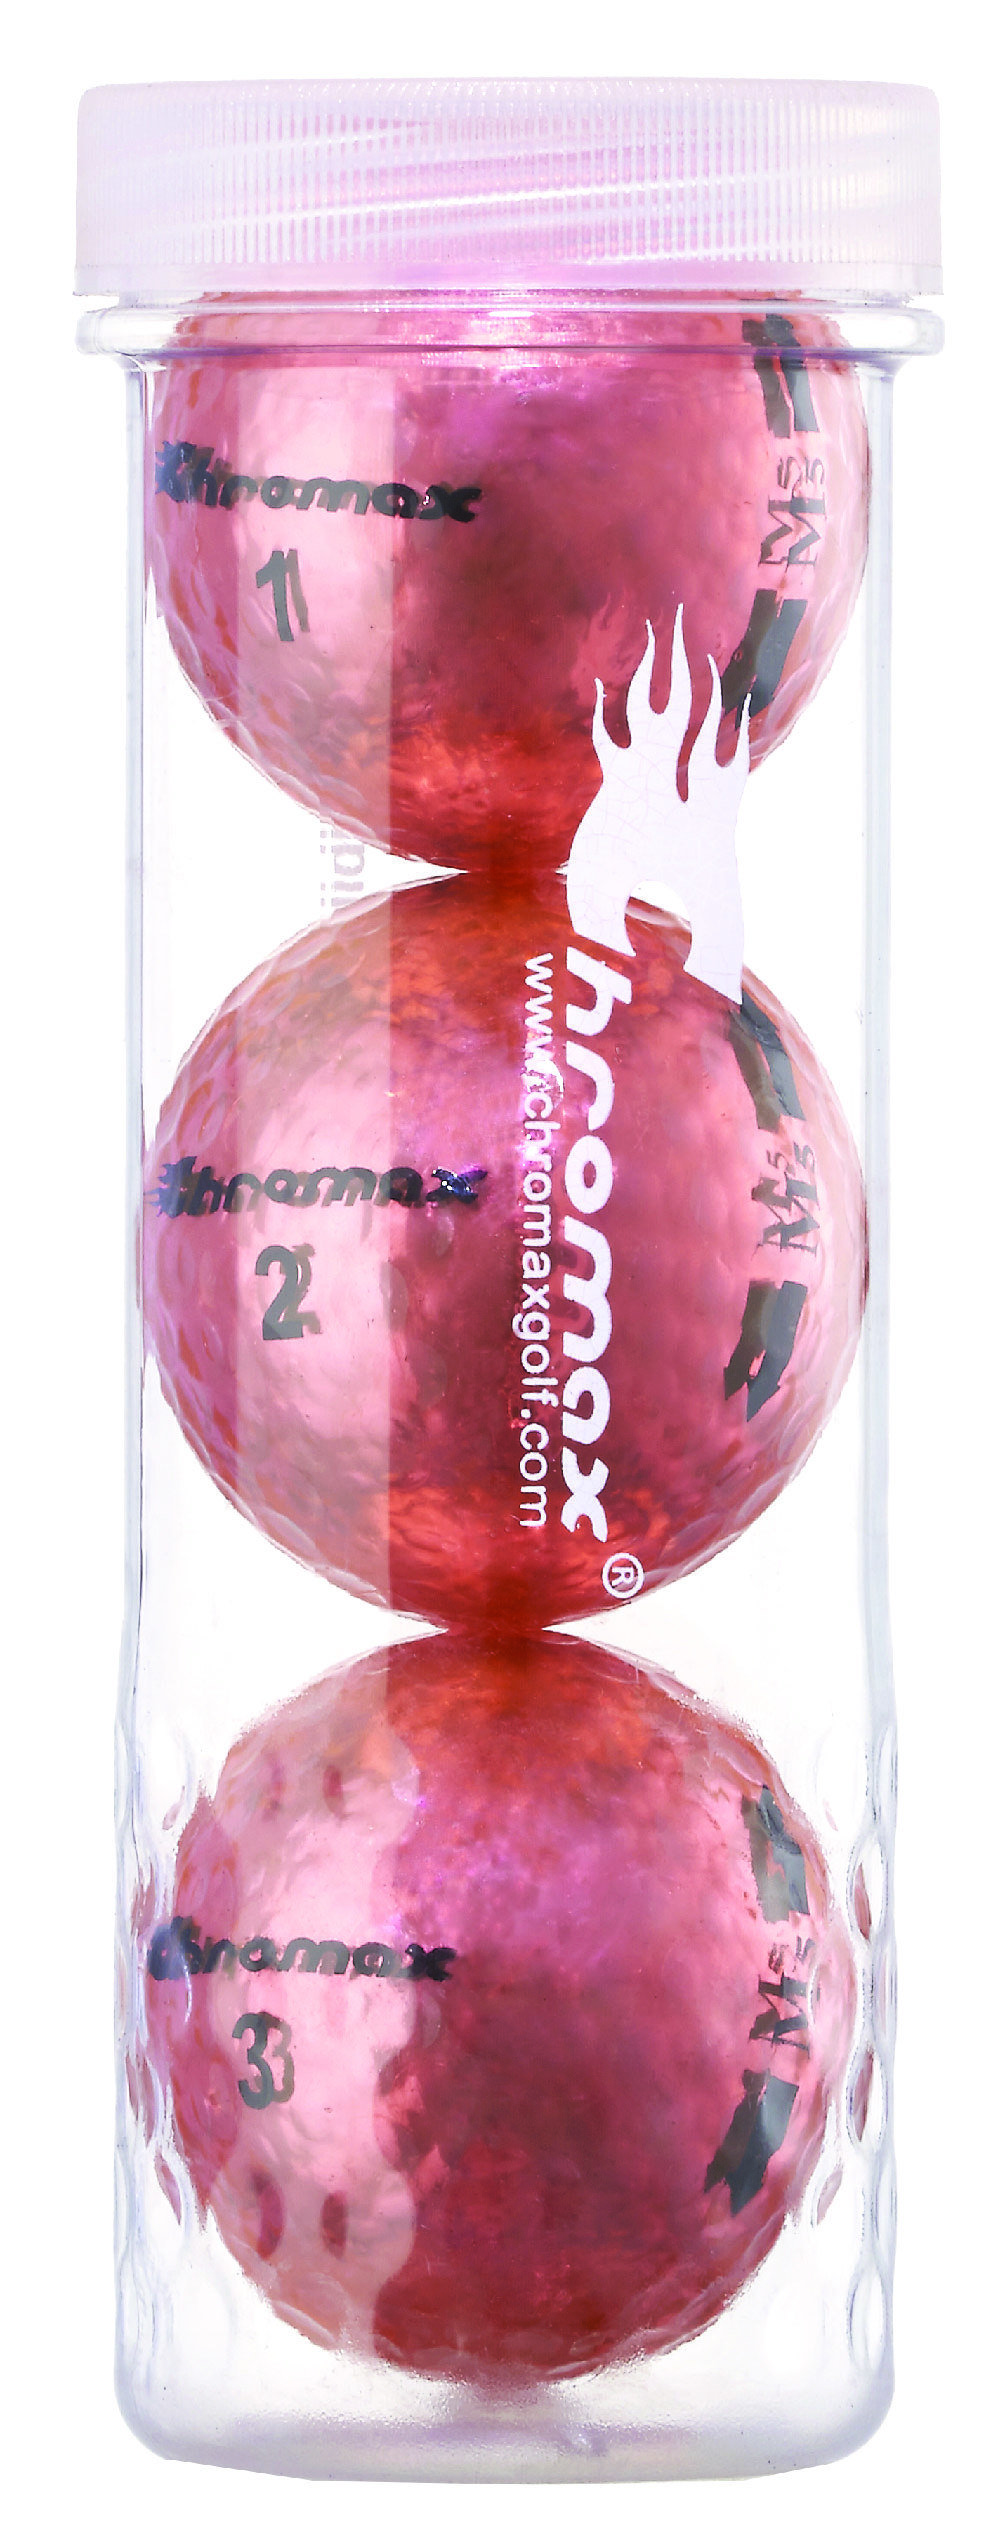 Chromax® Colored Pink Golf Balls - Metallic M5 3 Ball Tube CM53PNK